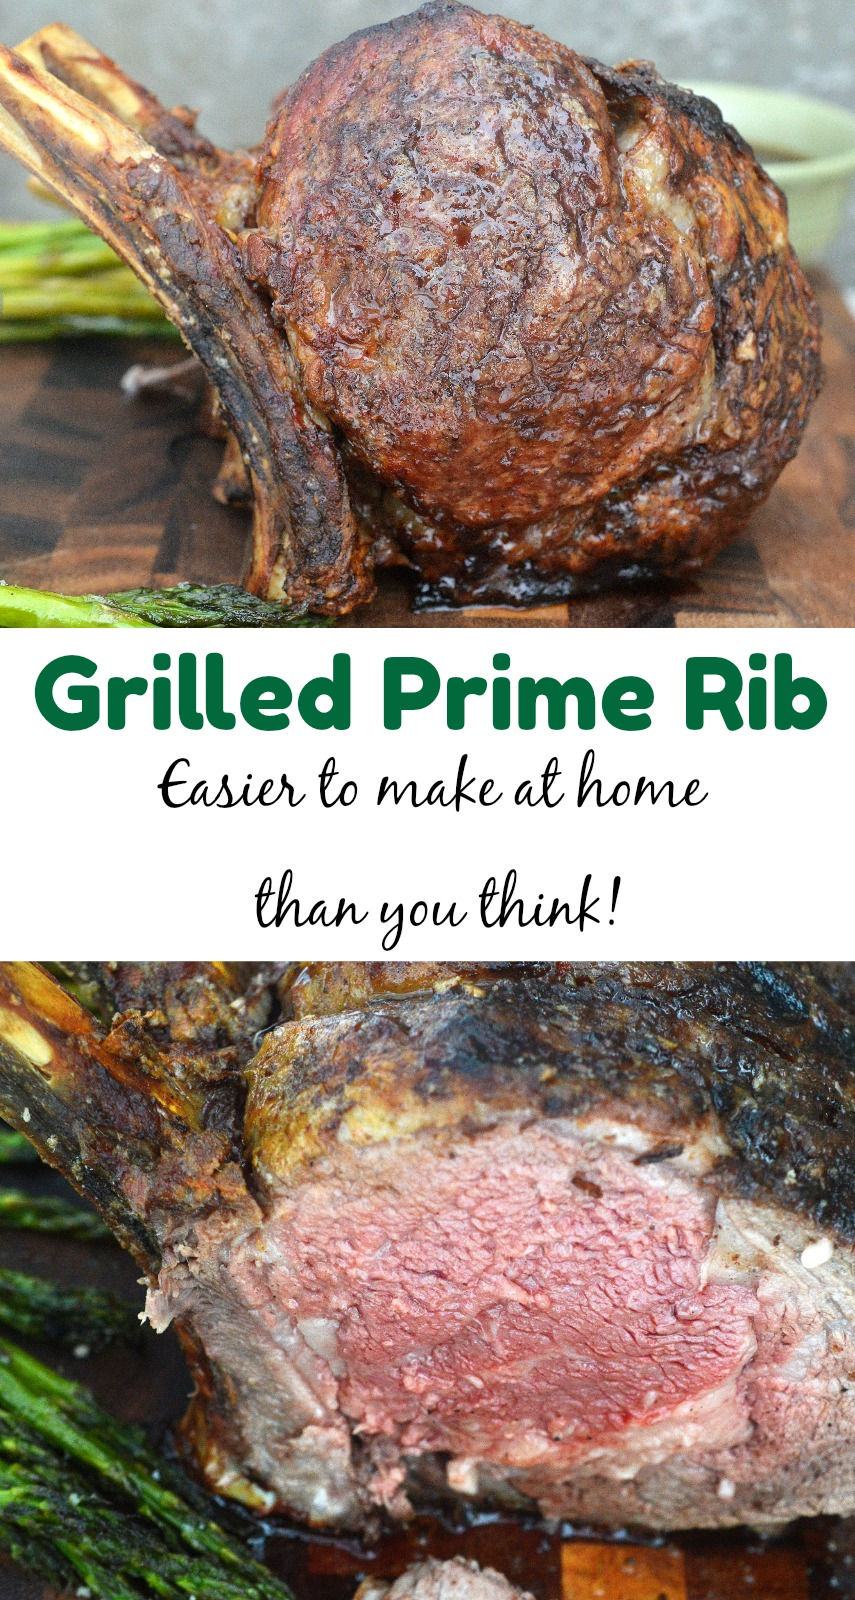 How to Cook Prime Beef